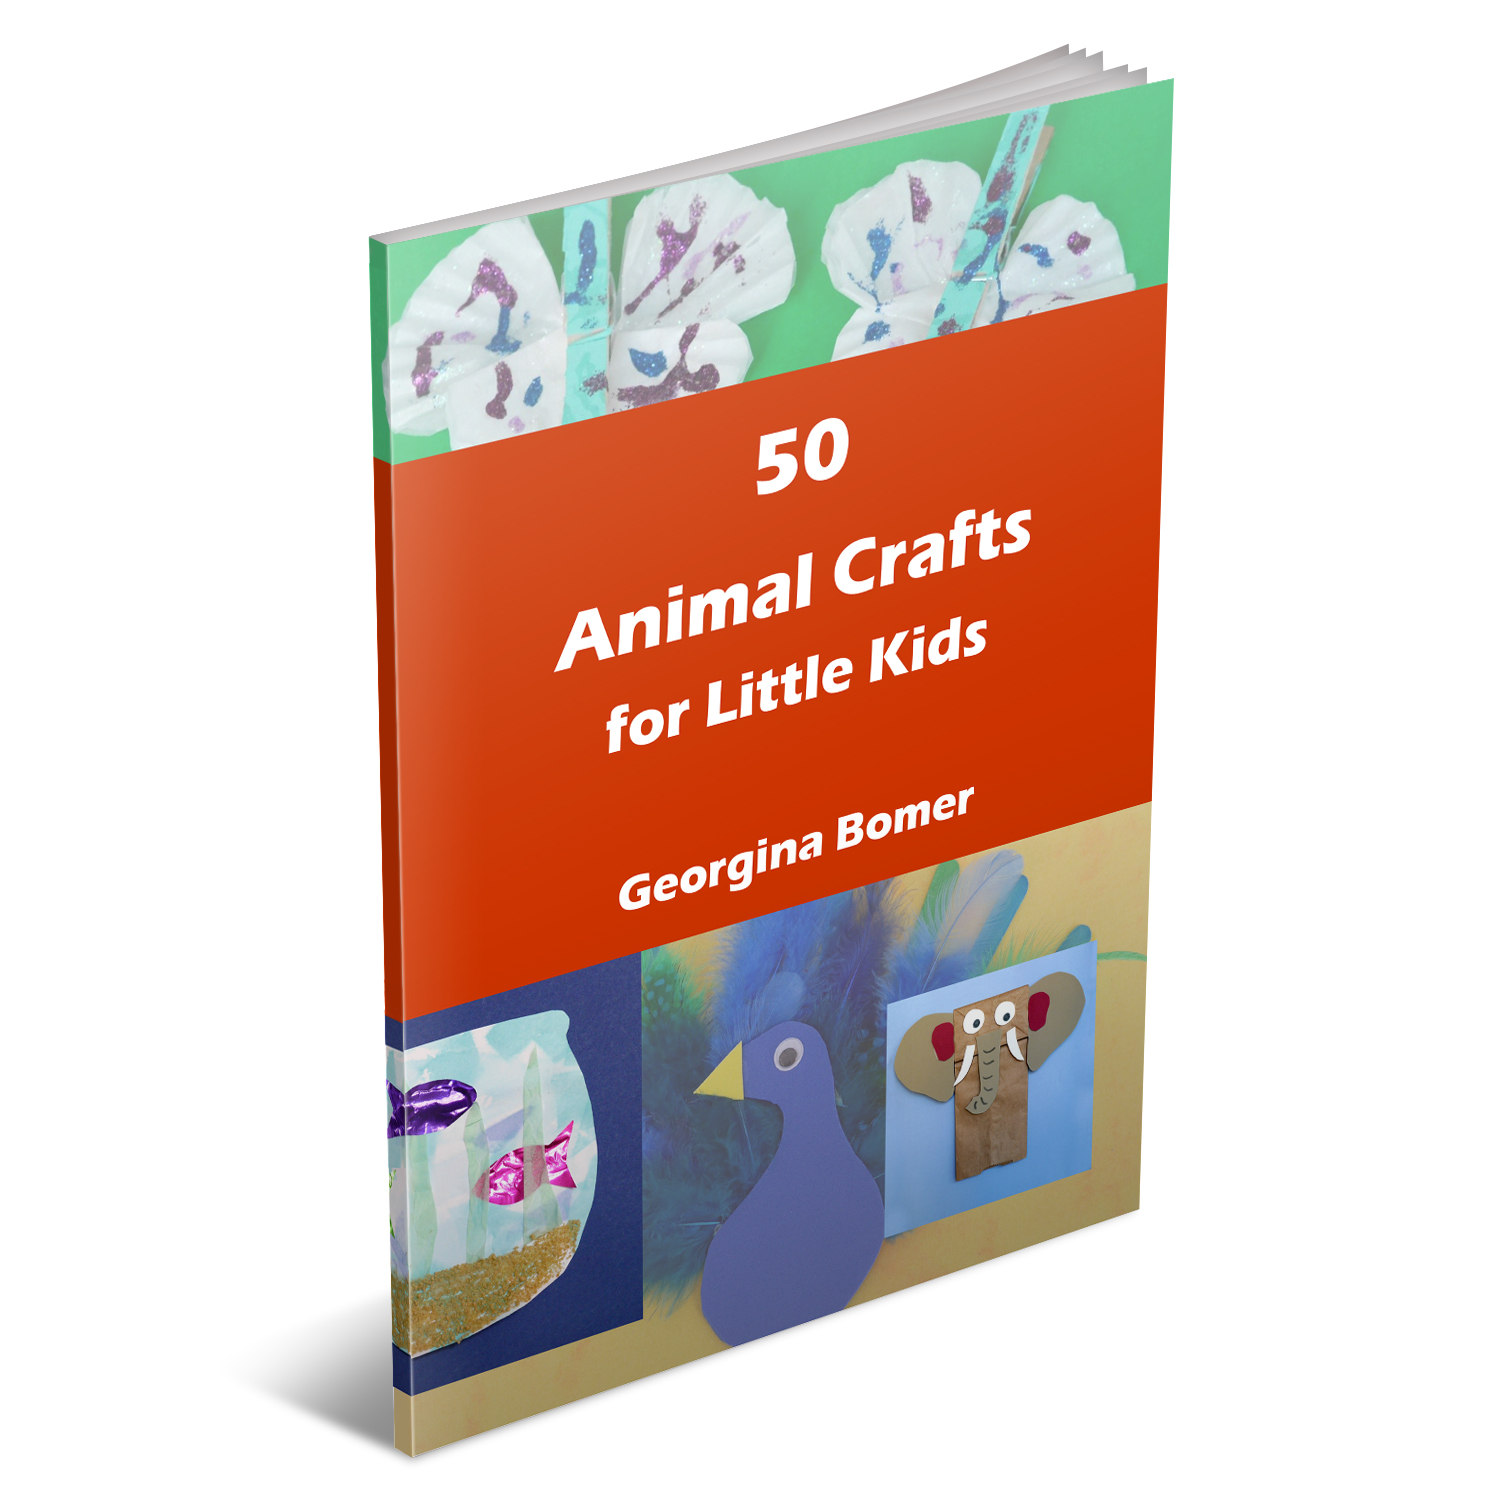 50 Animal Crafts for Little Kids by Georgina Bomer